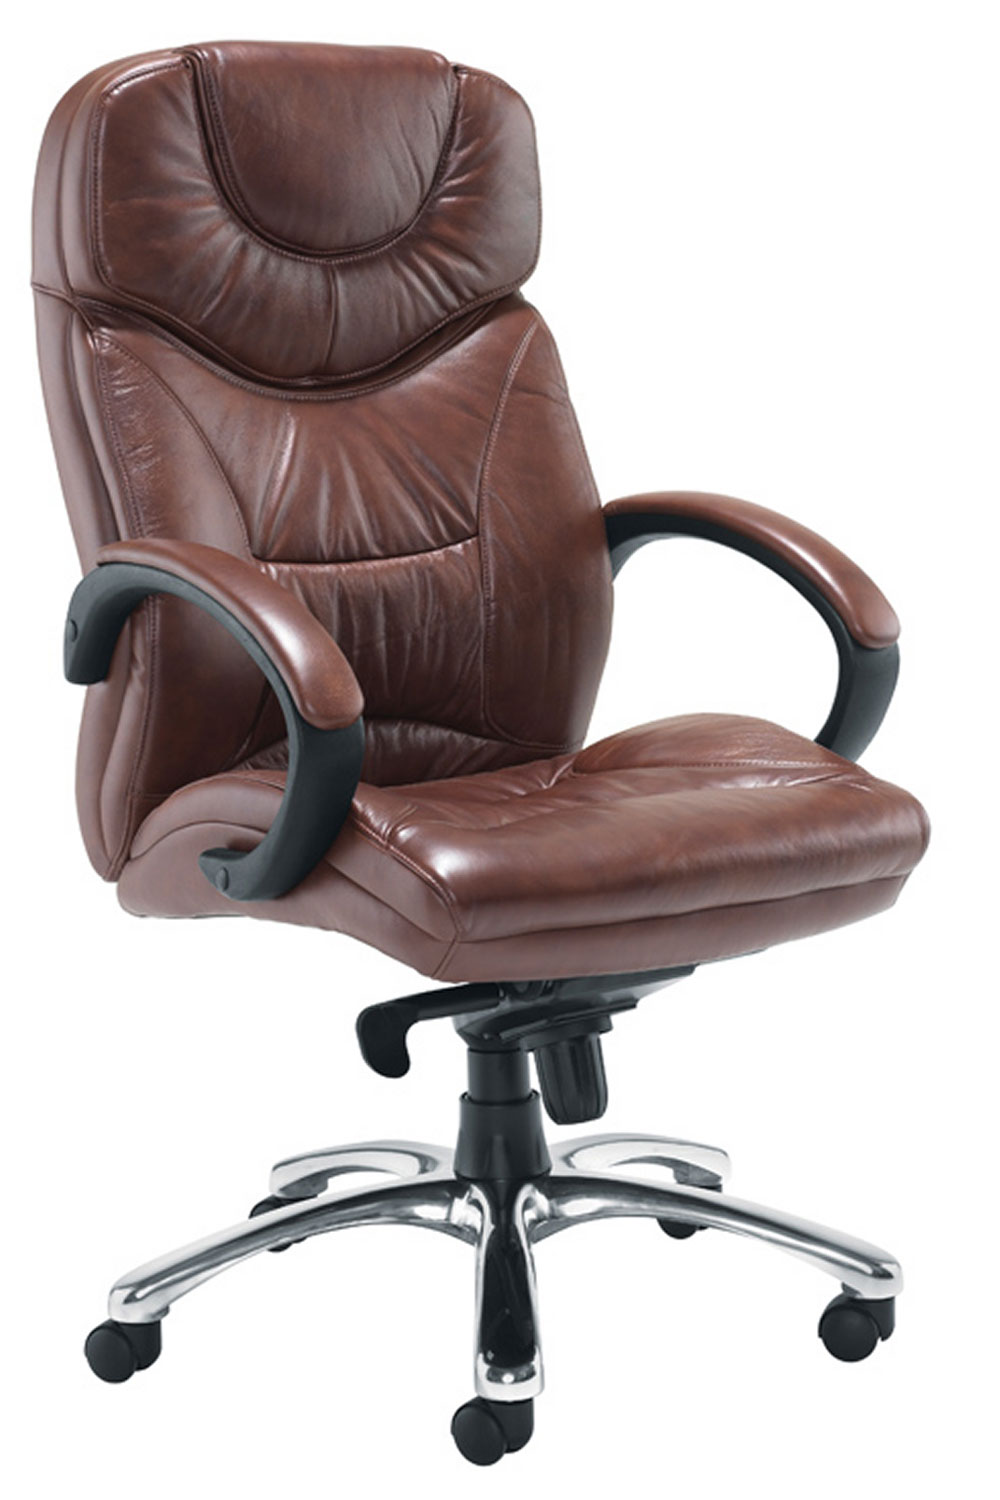 Nevada Brown executive Leather office chairs